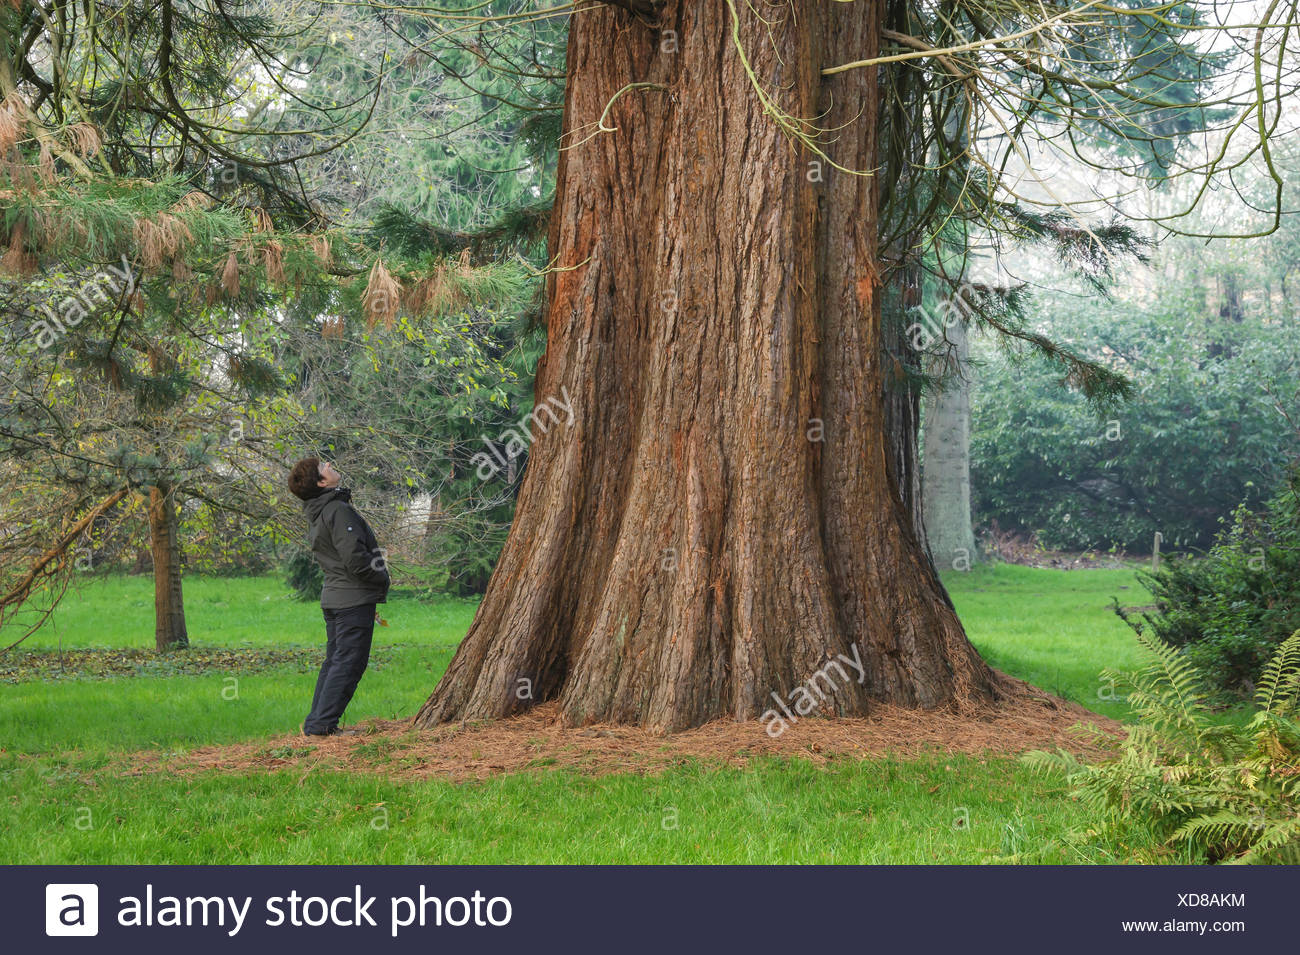 giant sequoia, giant redwood (Sequoiadendron giganteum), woman looking up a tree trunk, Germany, Mecklenburg-Western Pomerania - Stock Image